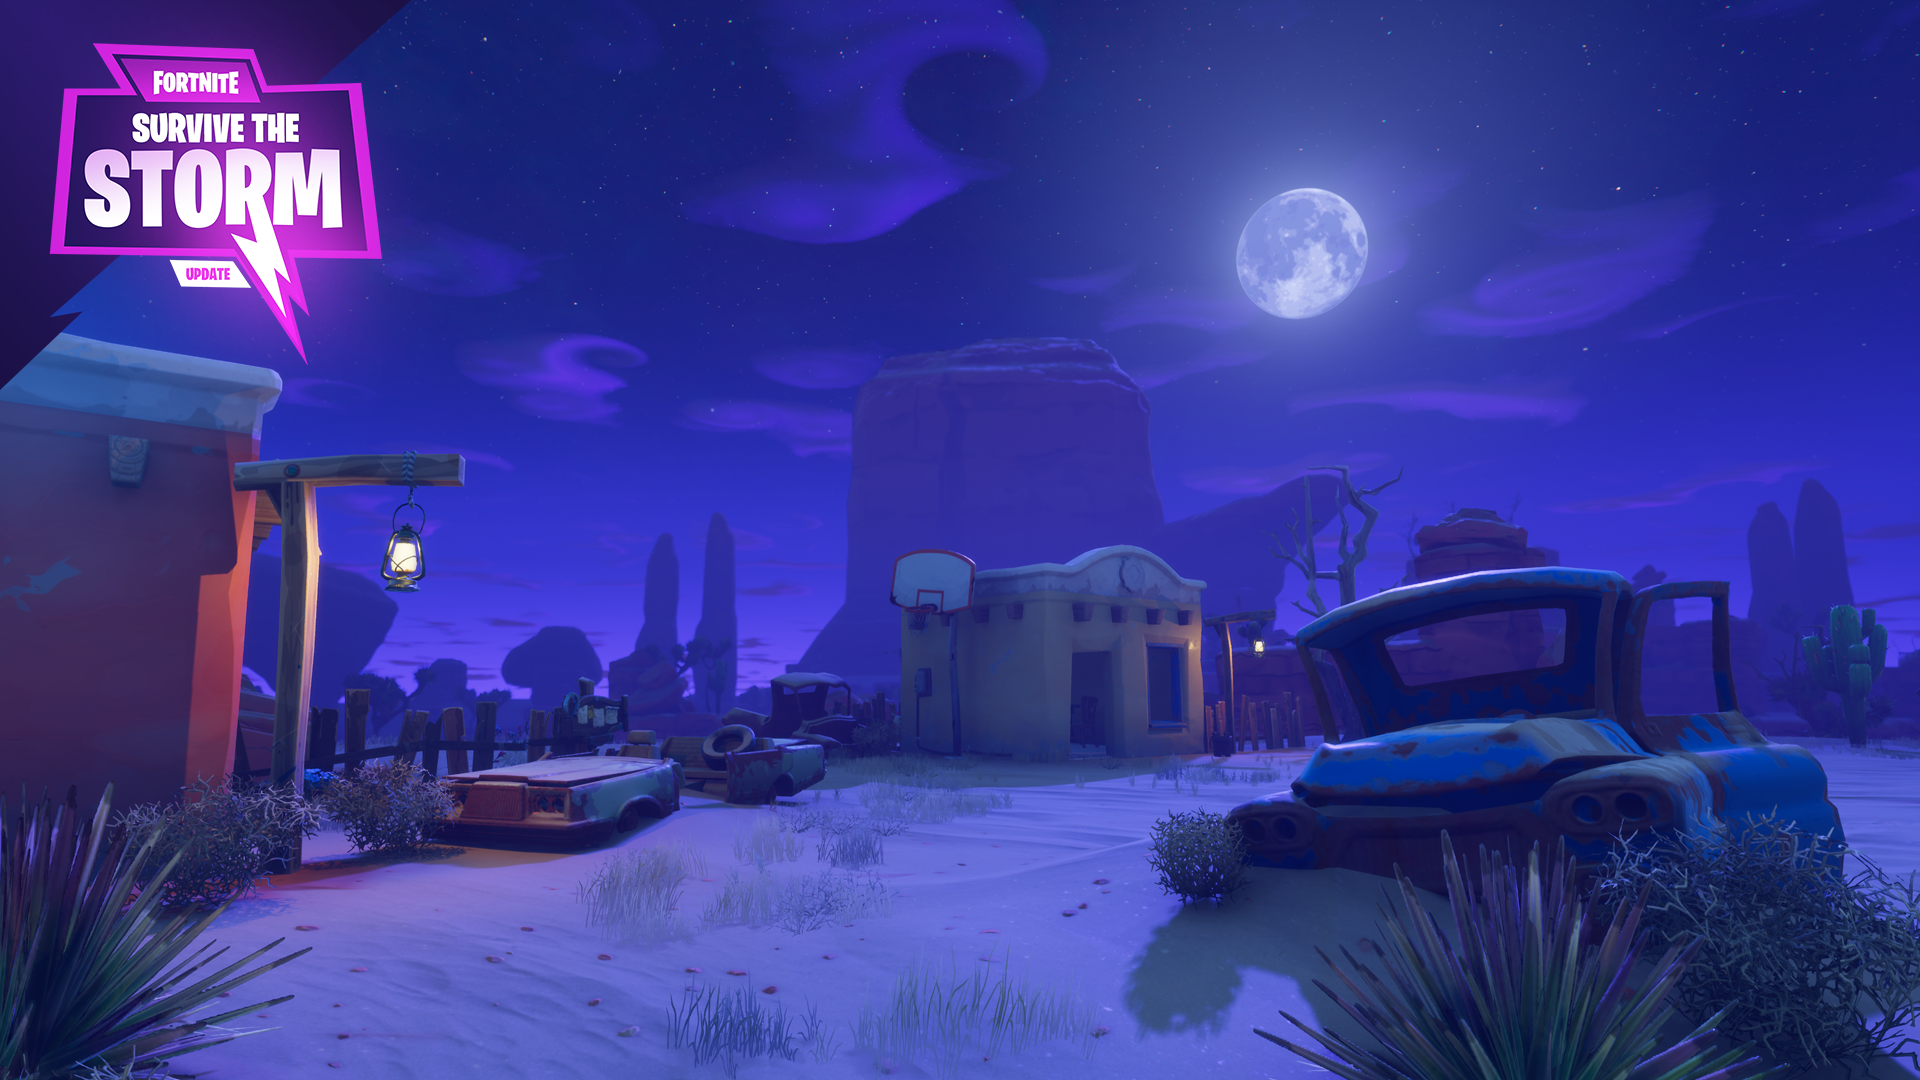 Fortnite%2Fblog%2Fsurvive-the-storm---release-notes%2FENG_2-Canny-Valley-1920x1080-796e1d895f3e98003ad36a35f2c09668d333462d